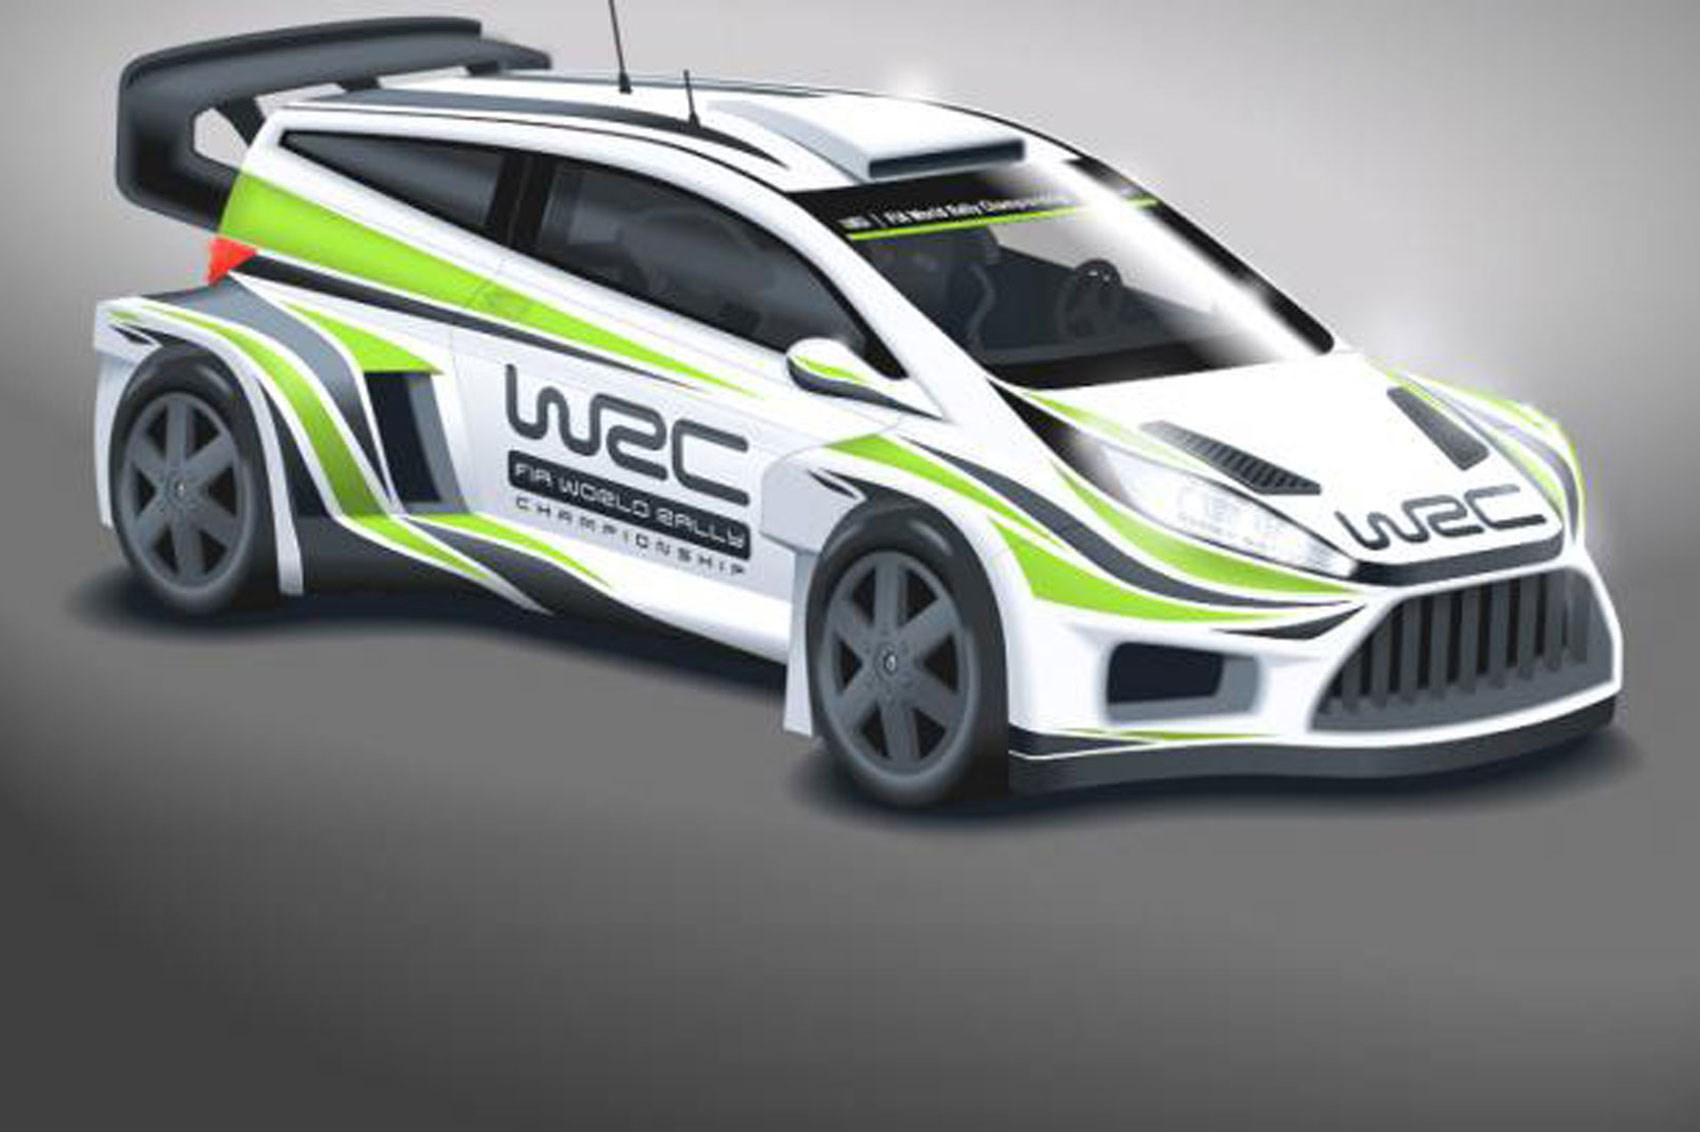 Ultrablogus  Splendid Wild New Look For Wrc Cars In  By Car Magazine With Licious Wrc Cars Will Get Wider Bodies Bigger Wings And More Power For  With Enchanting  Chevy Impala Interior Also Subaru Outback  Interior In Addition Chevy Suburban  Interior And  Volvo Xc Interior As Well As  Acura Tl Interior Additionally  Ford Escape Interior From Carmagazinecouk With Ultrablogus  Licious Wild New Look For Wrc Cars In  By Car Magazine With Enchanting Wrc Cars Will Get Wider Bodies Bigger Wings And More Power For  And Splendid  Chevy Impala Interior Also Subaru Outback  Interior In Addition Chevy Suburban  Interior From Carmagazinecouk